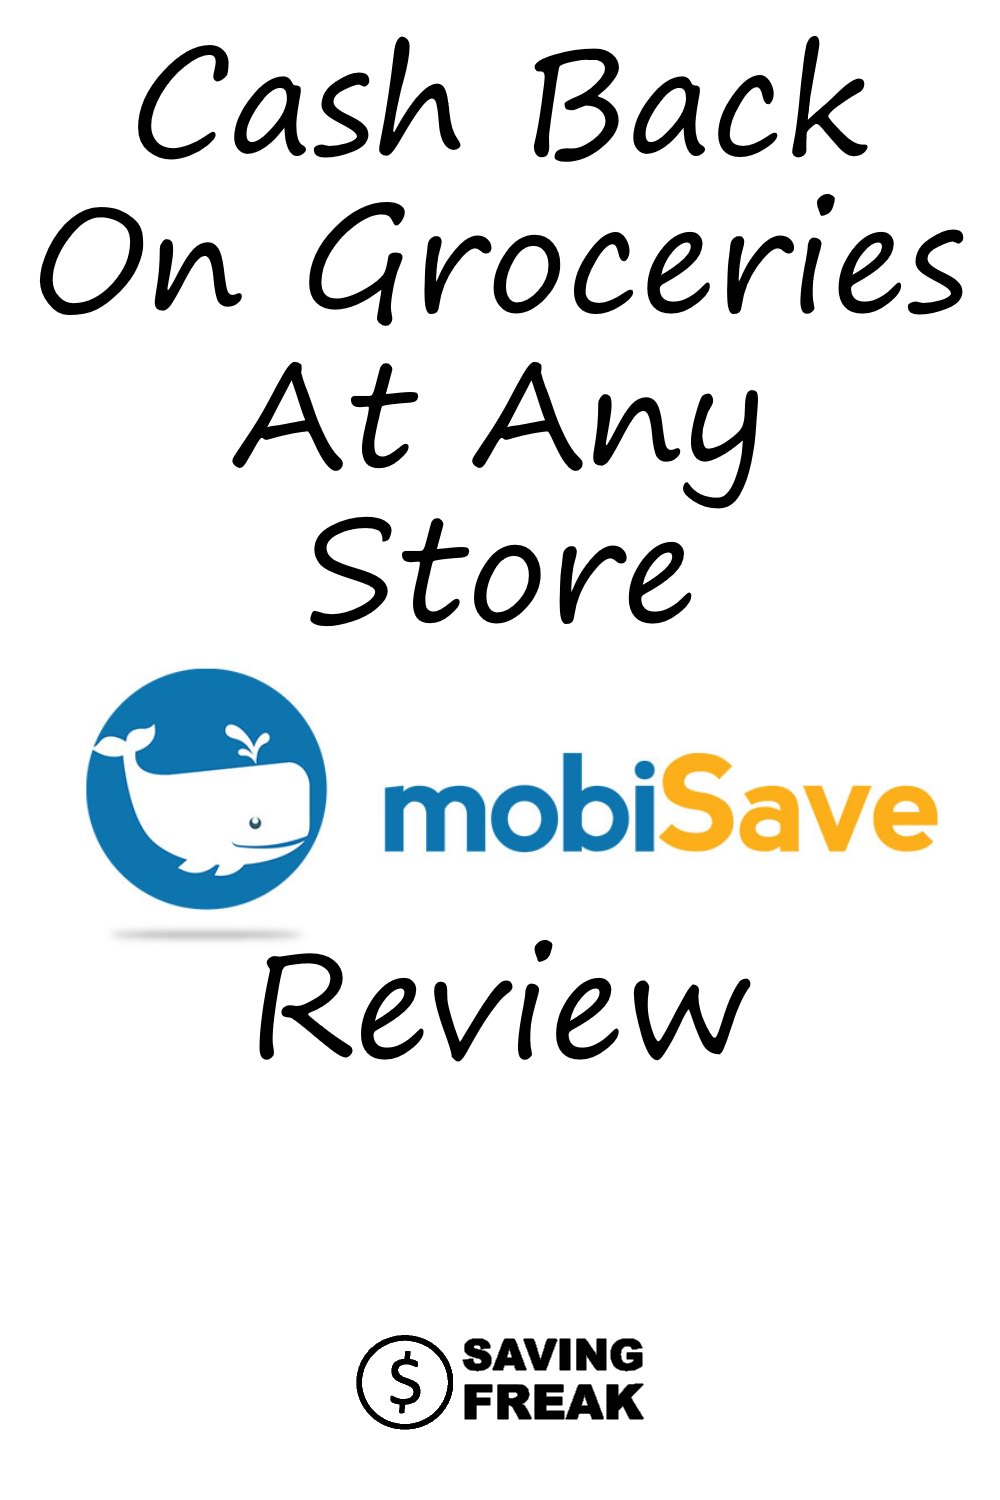 This mobiSave review details how the app can save you money and how you can use the app to save money on groceries.